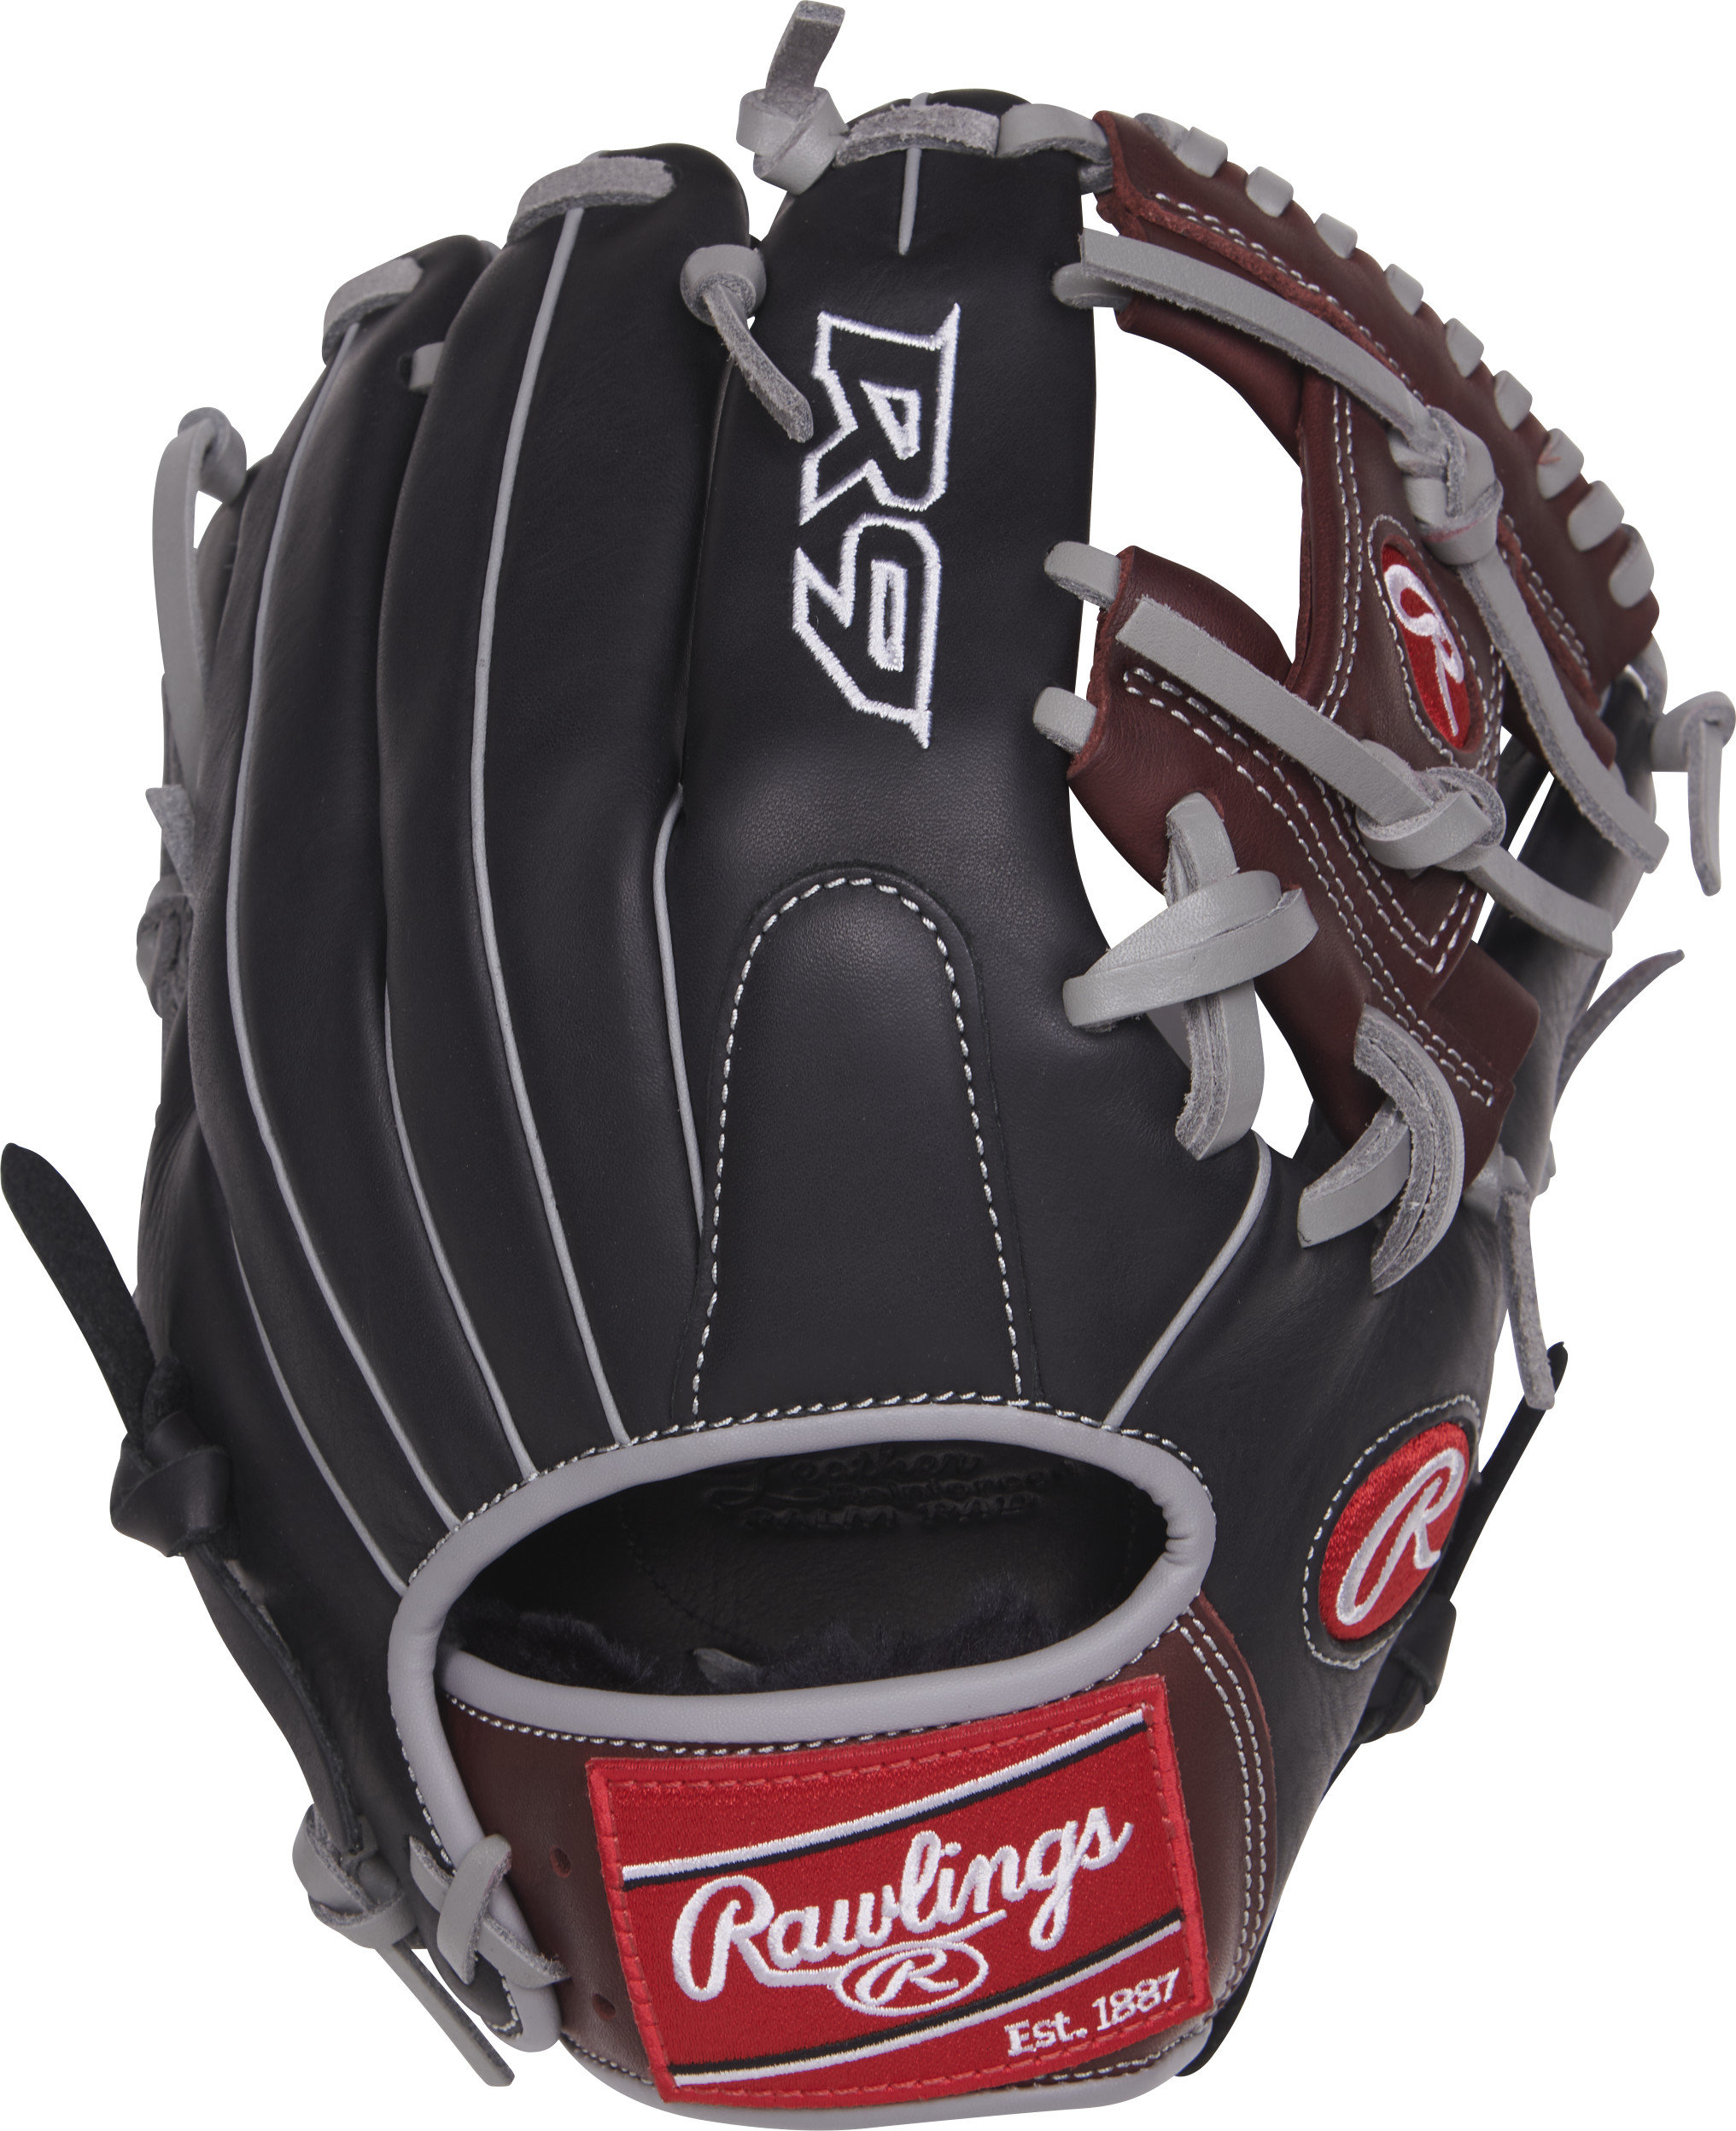 http://www.bestbatdeals.com/images/gloves/rawlings/R9204-2BSG-2.jpg